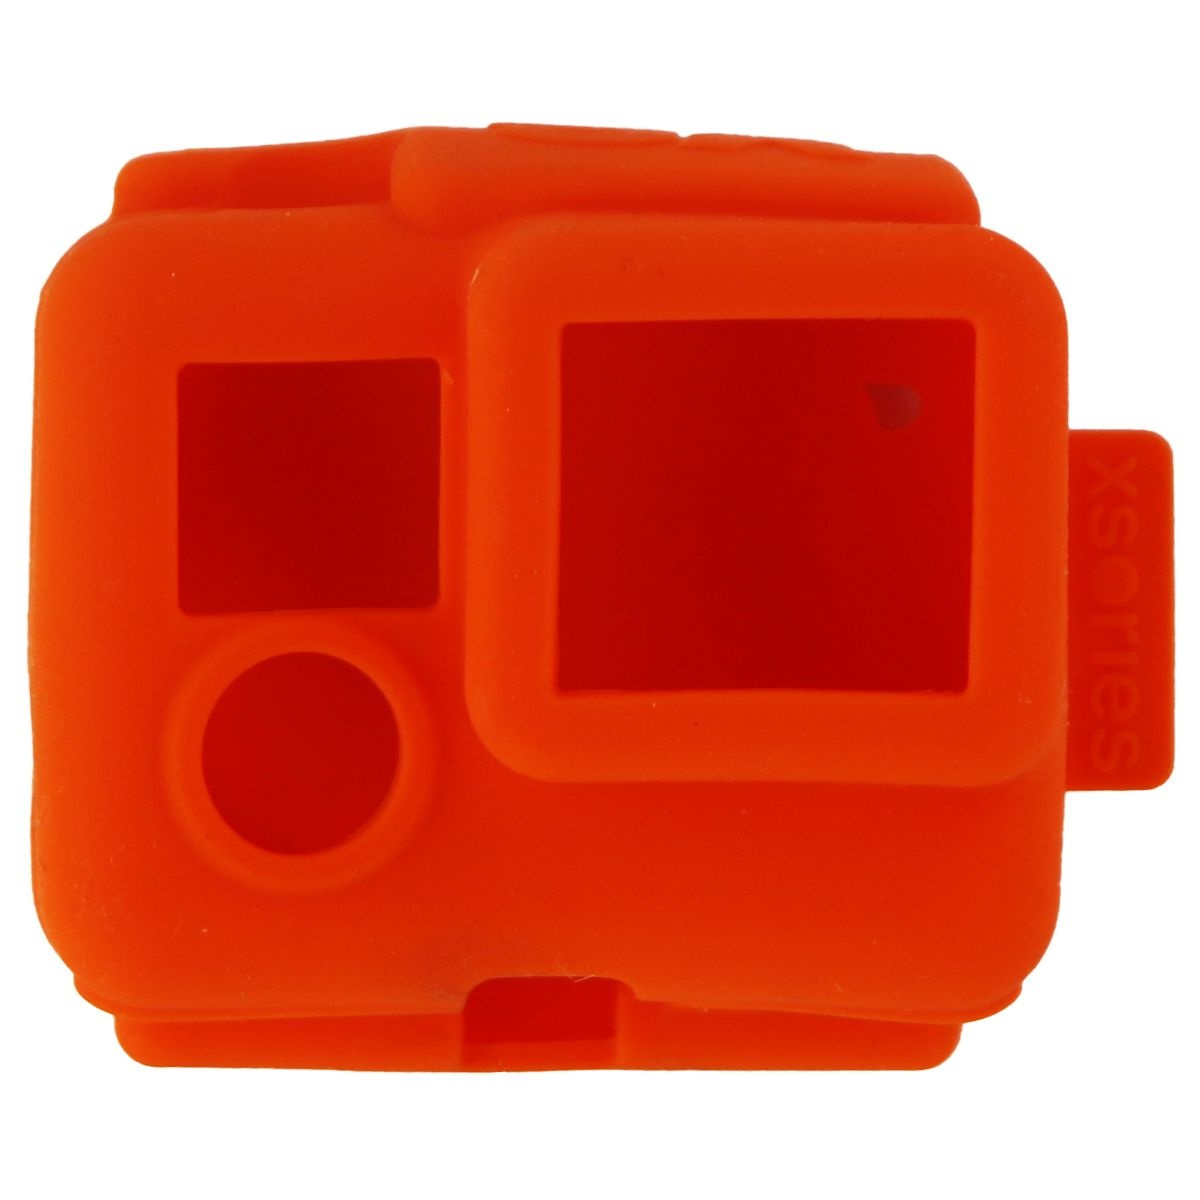 XSories Silicone Cover Case for GoPro Hero, Hero 3, 3+ and Hero 4 - Orange